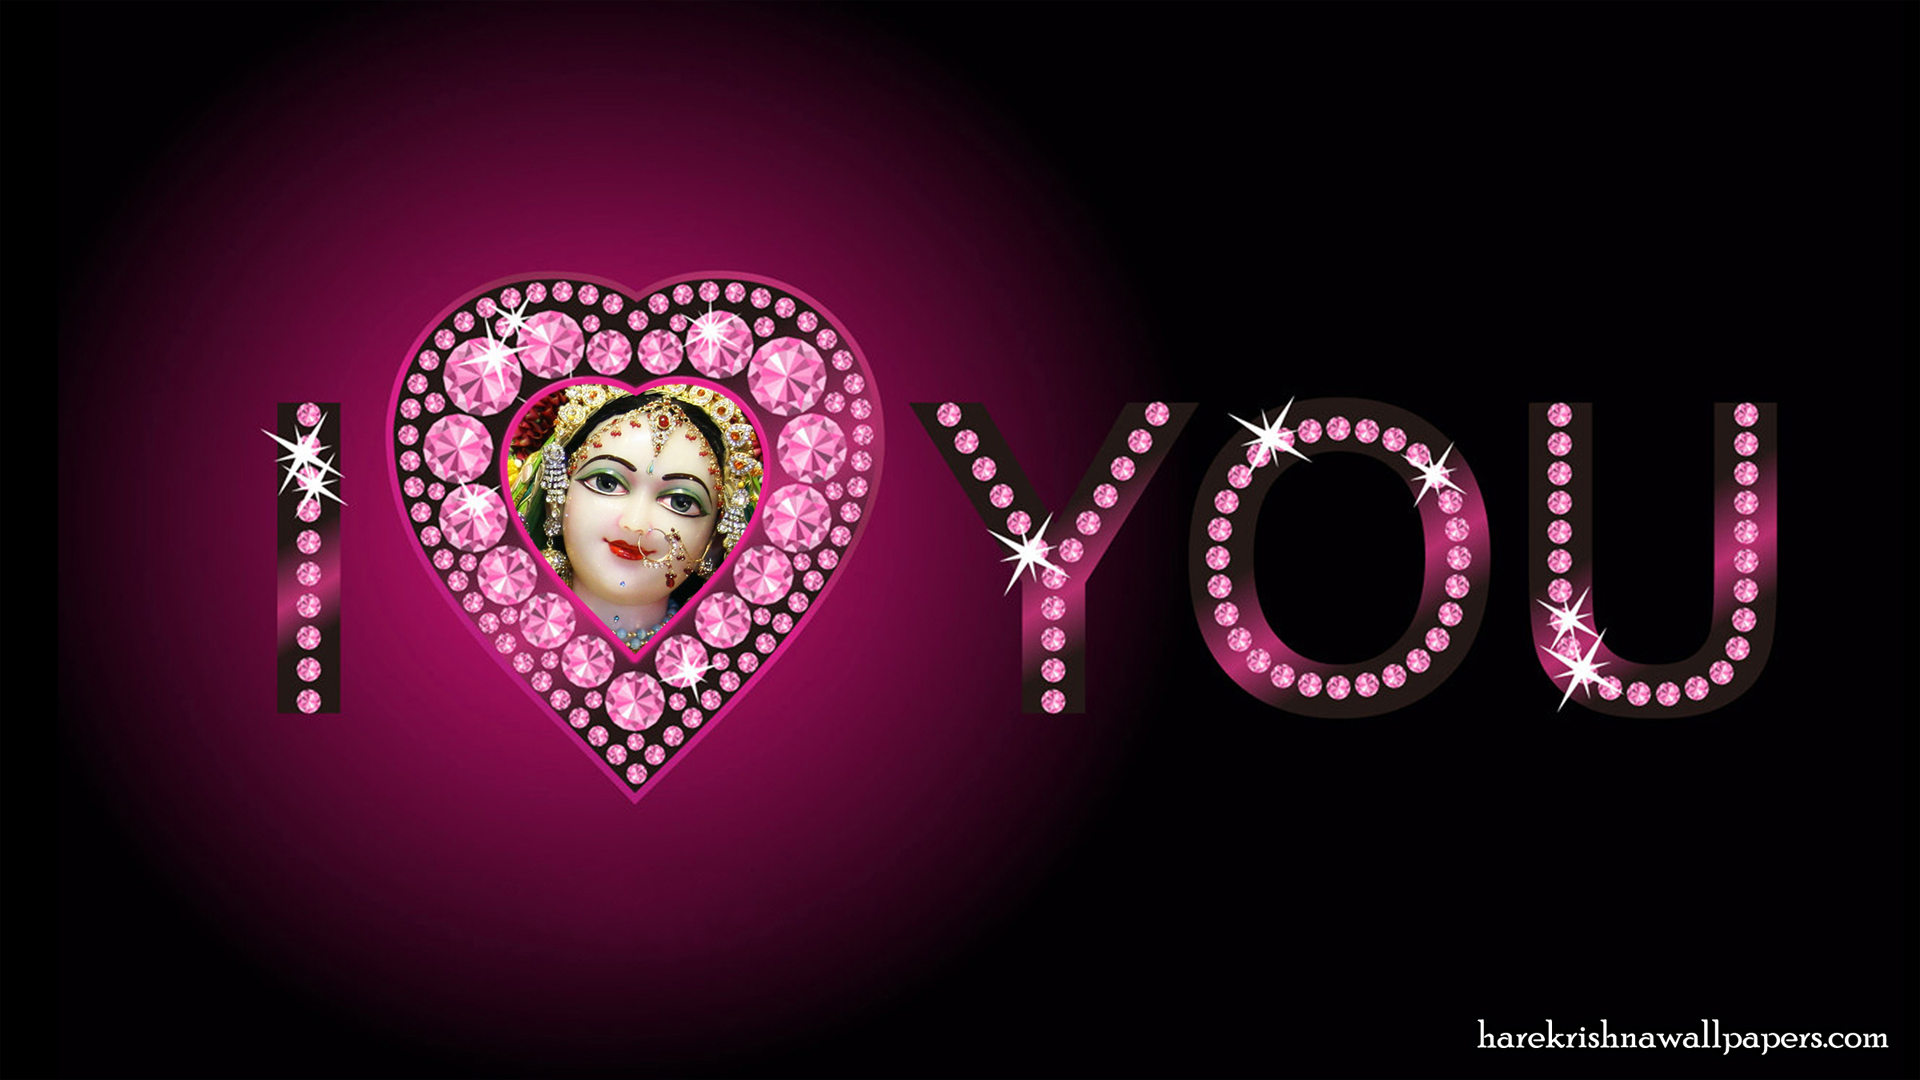 I Love You Radharani Wallpaper (015) Size 1920x1080 Download